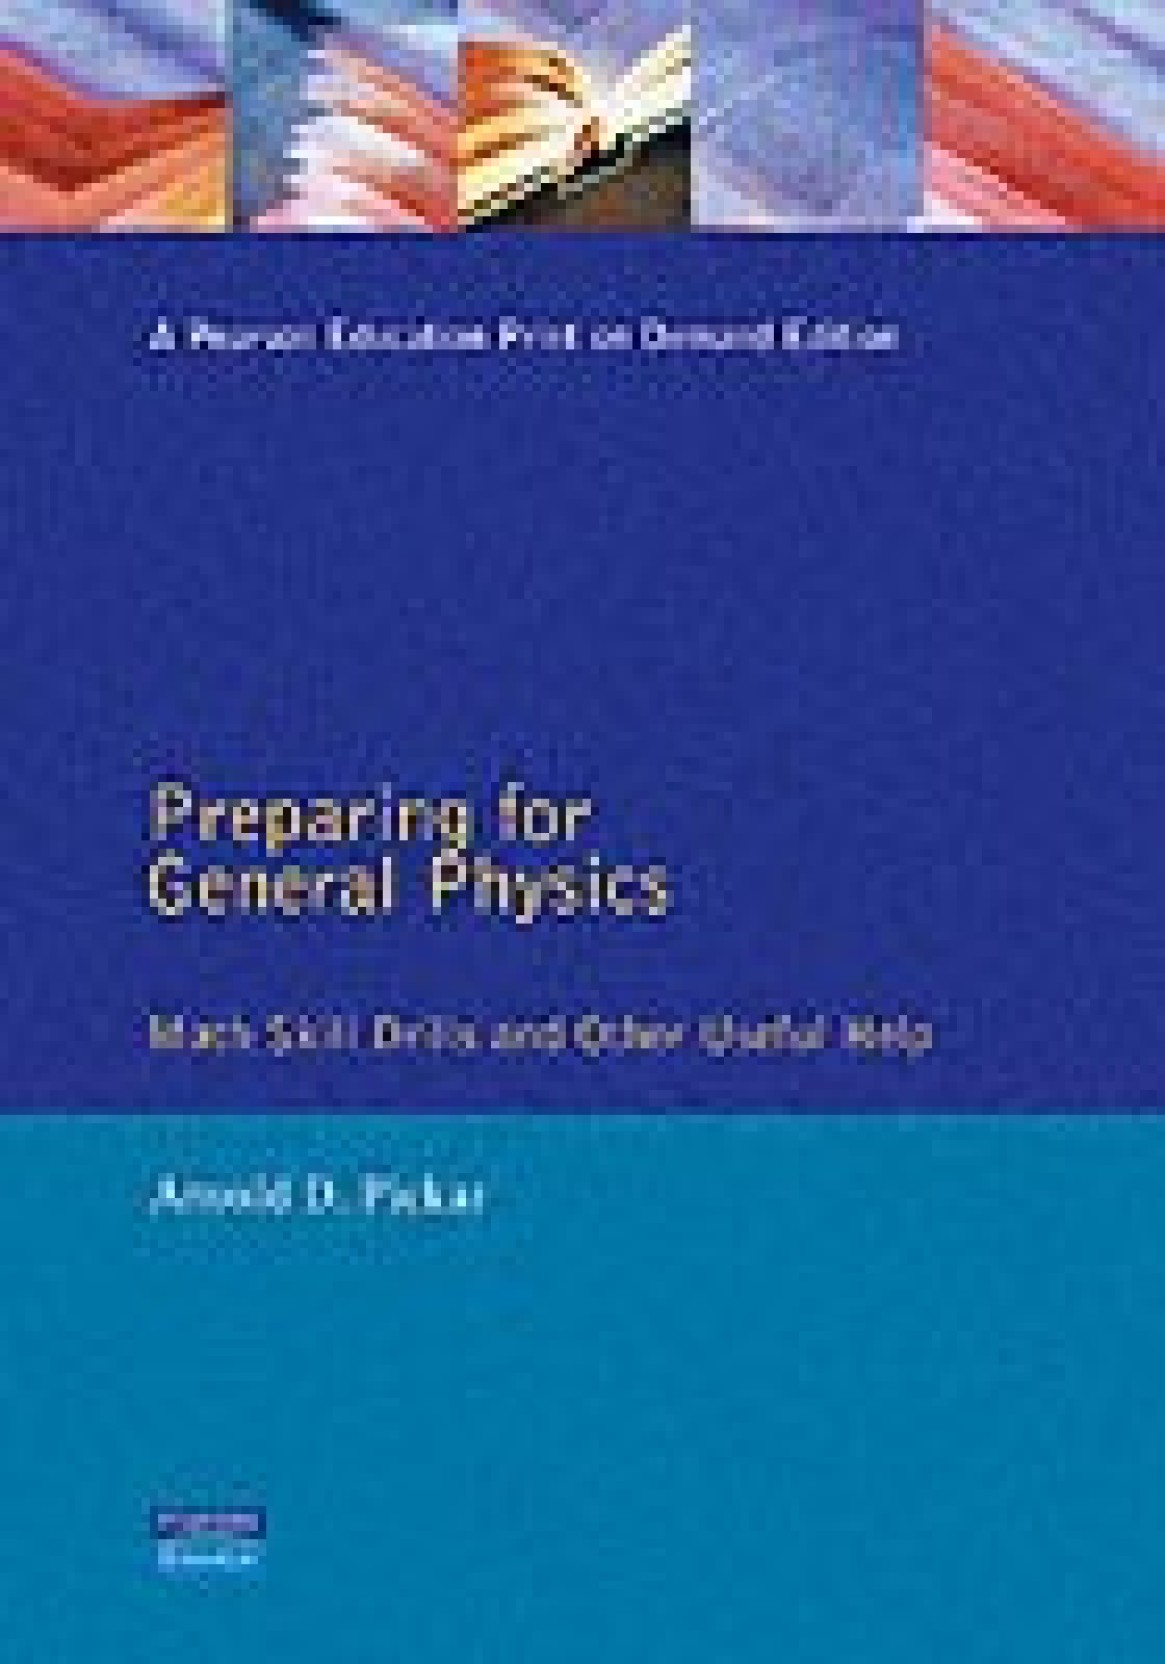 Preparing for General Physics - Math Skill Drills and Other Useful ...